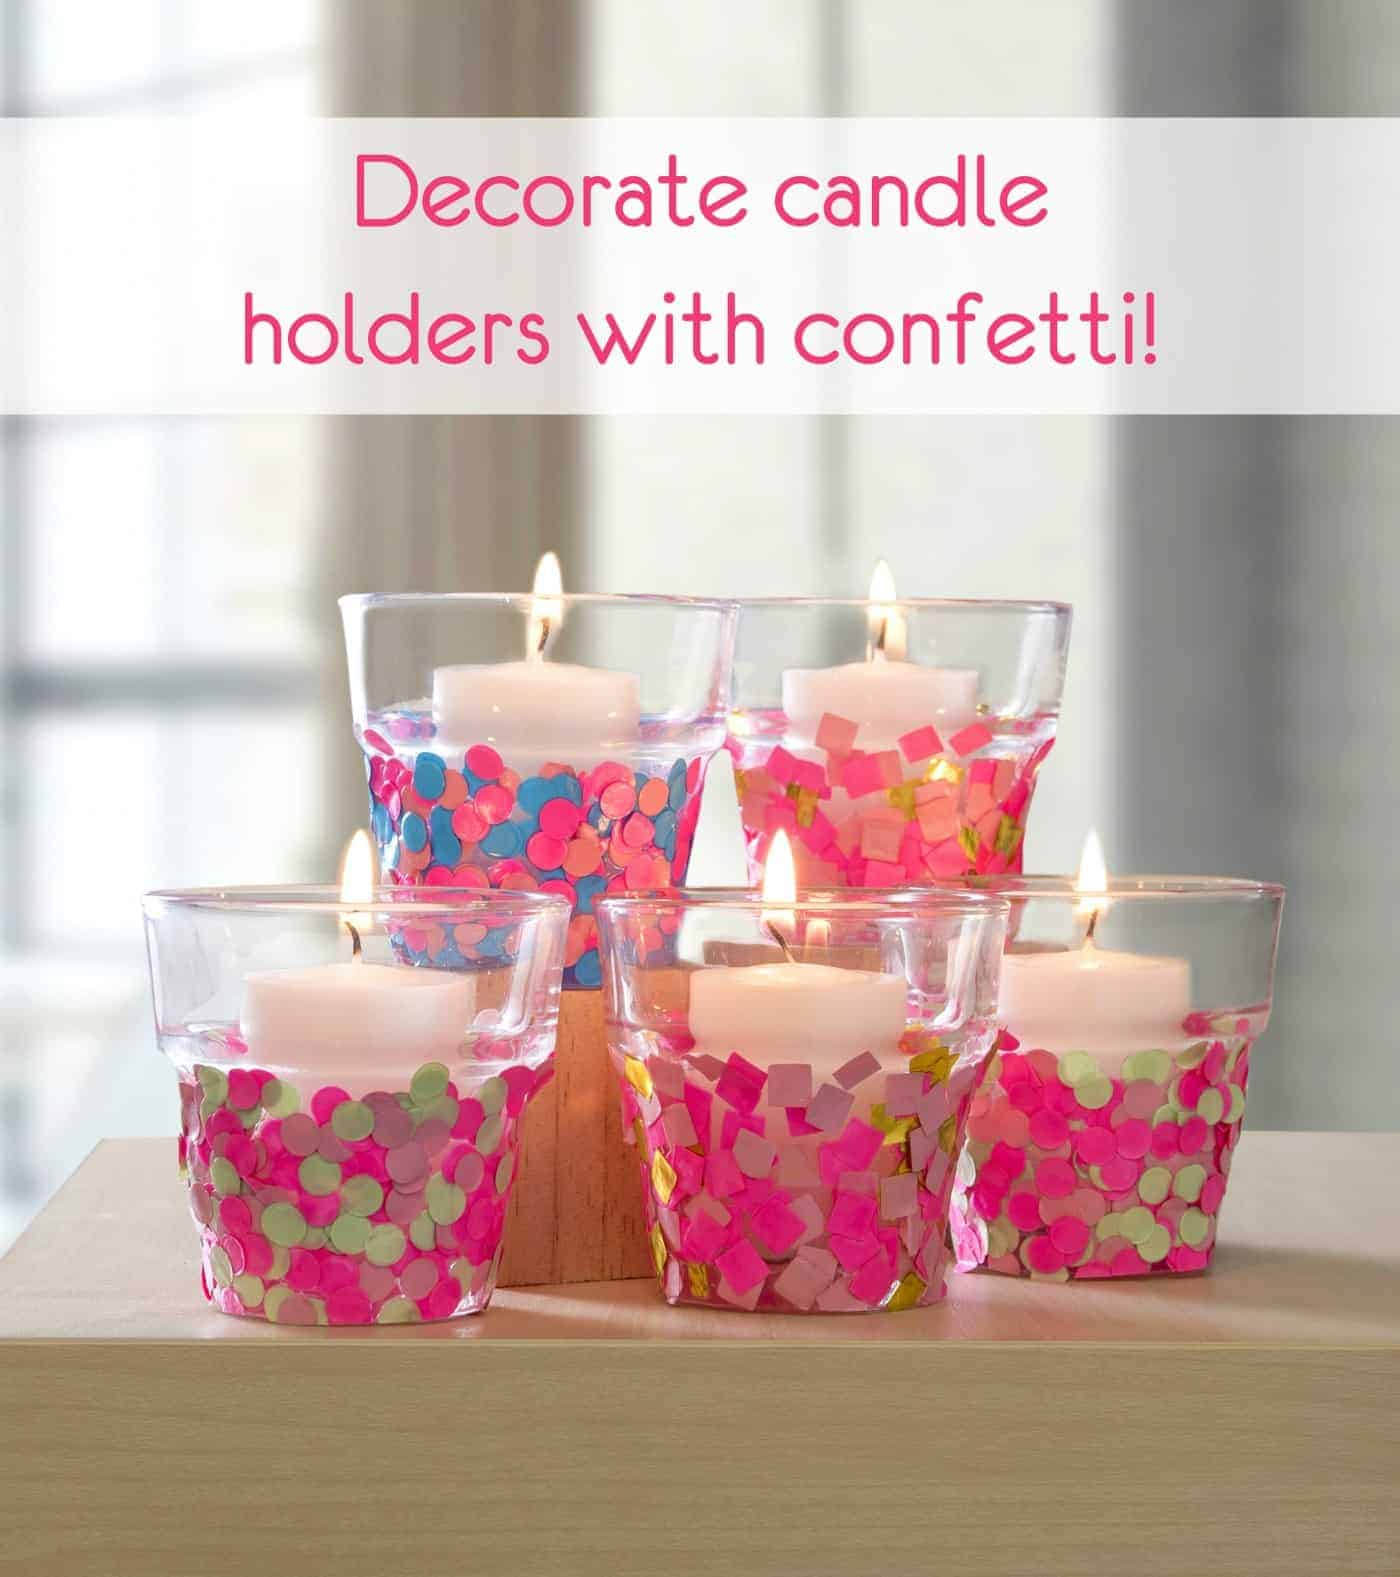 Decorate candle holders with confetti e1467489532324